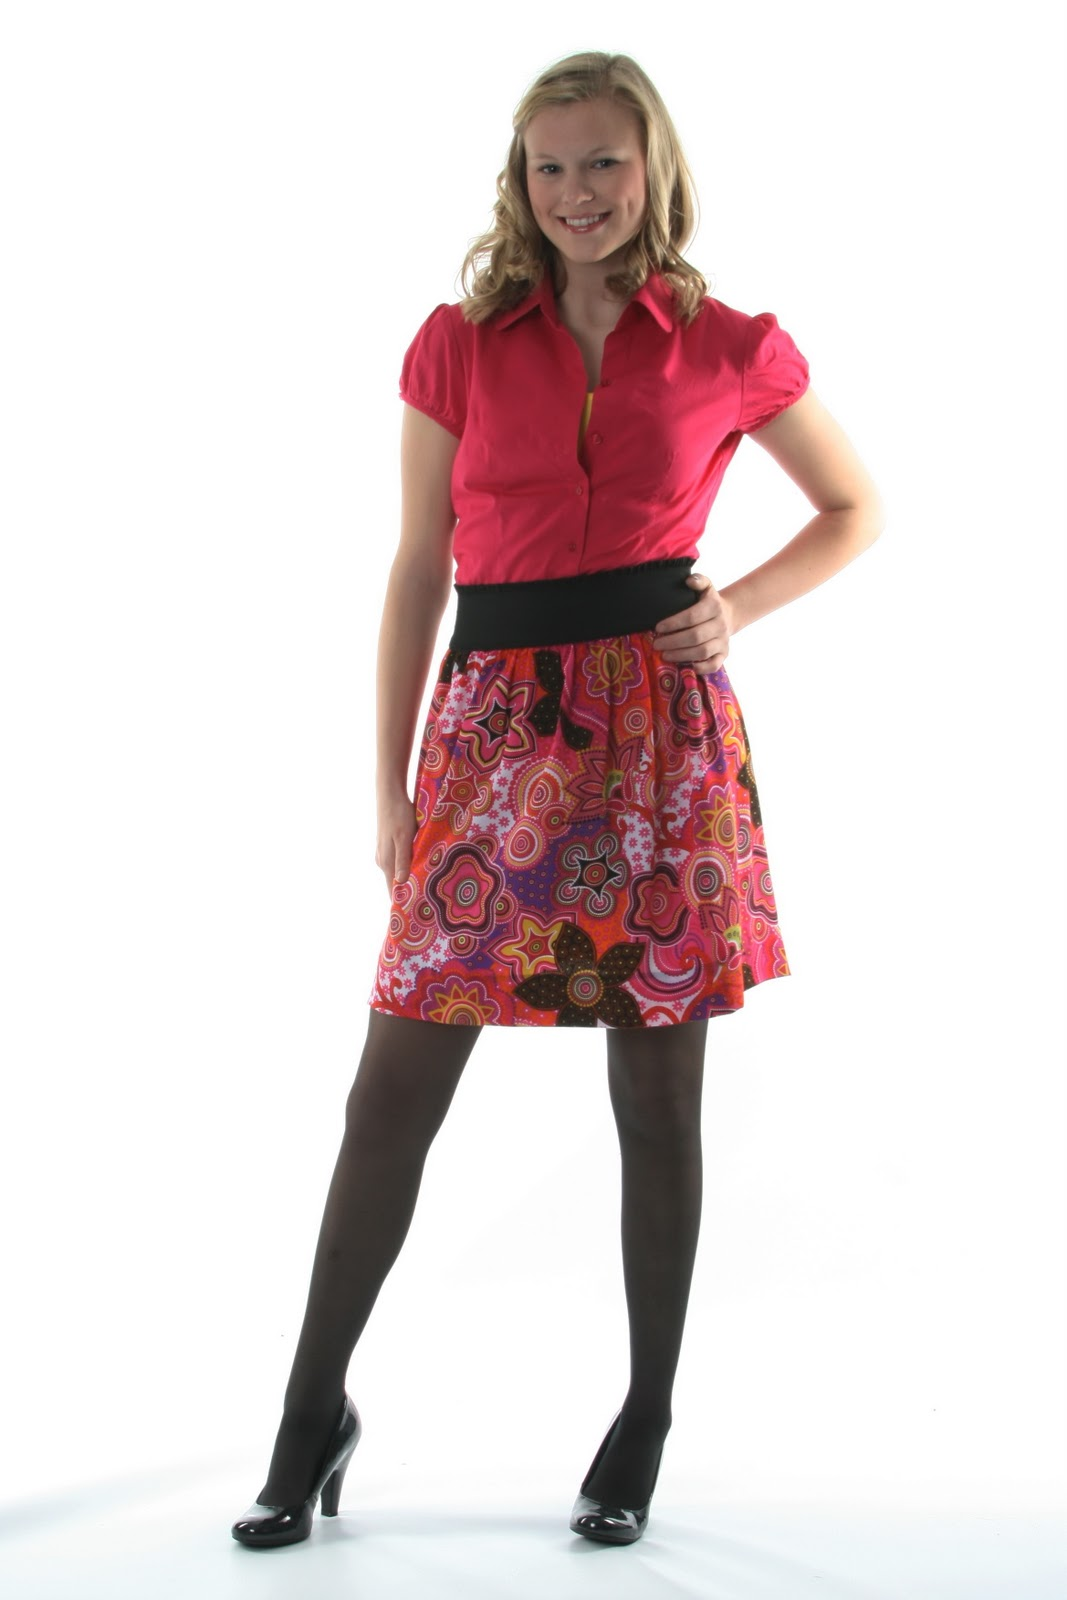 New Teen Skirt Patterns - Coming Soon